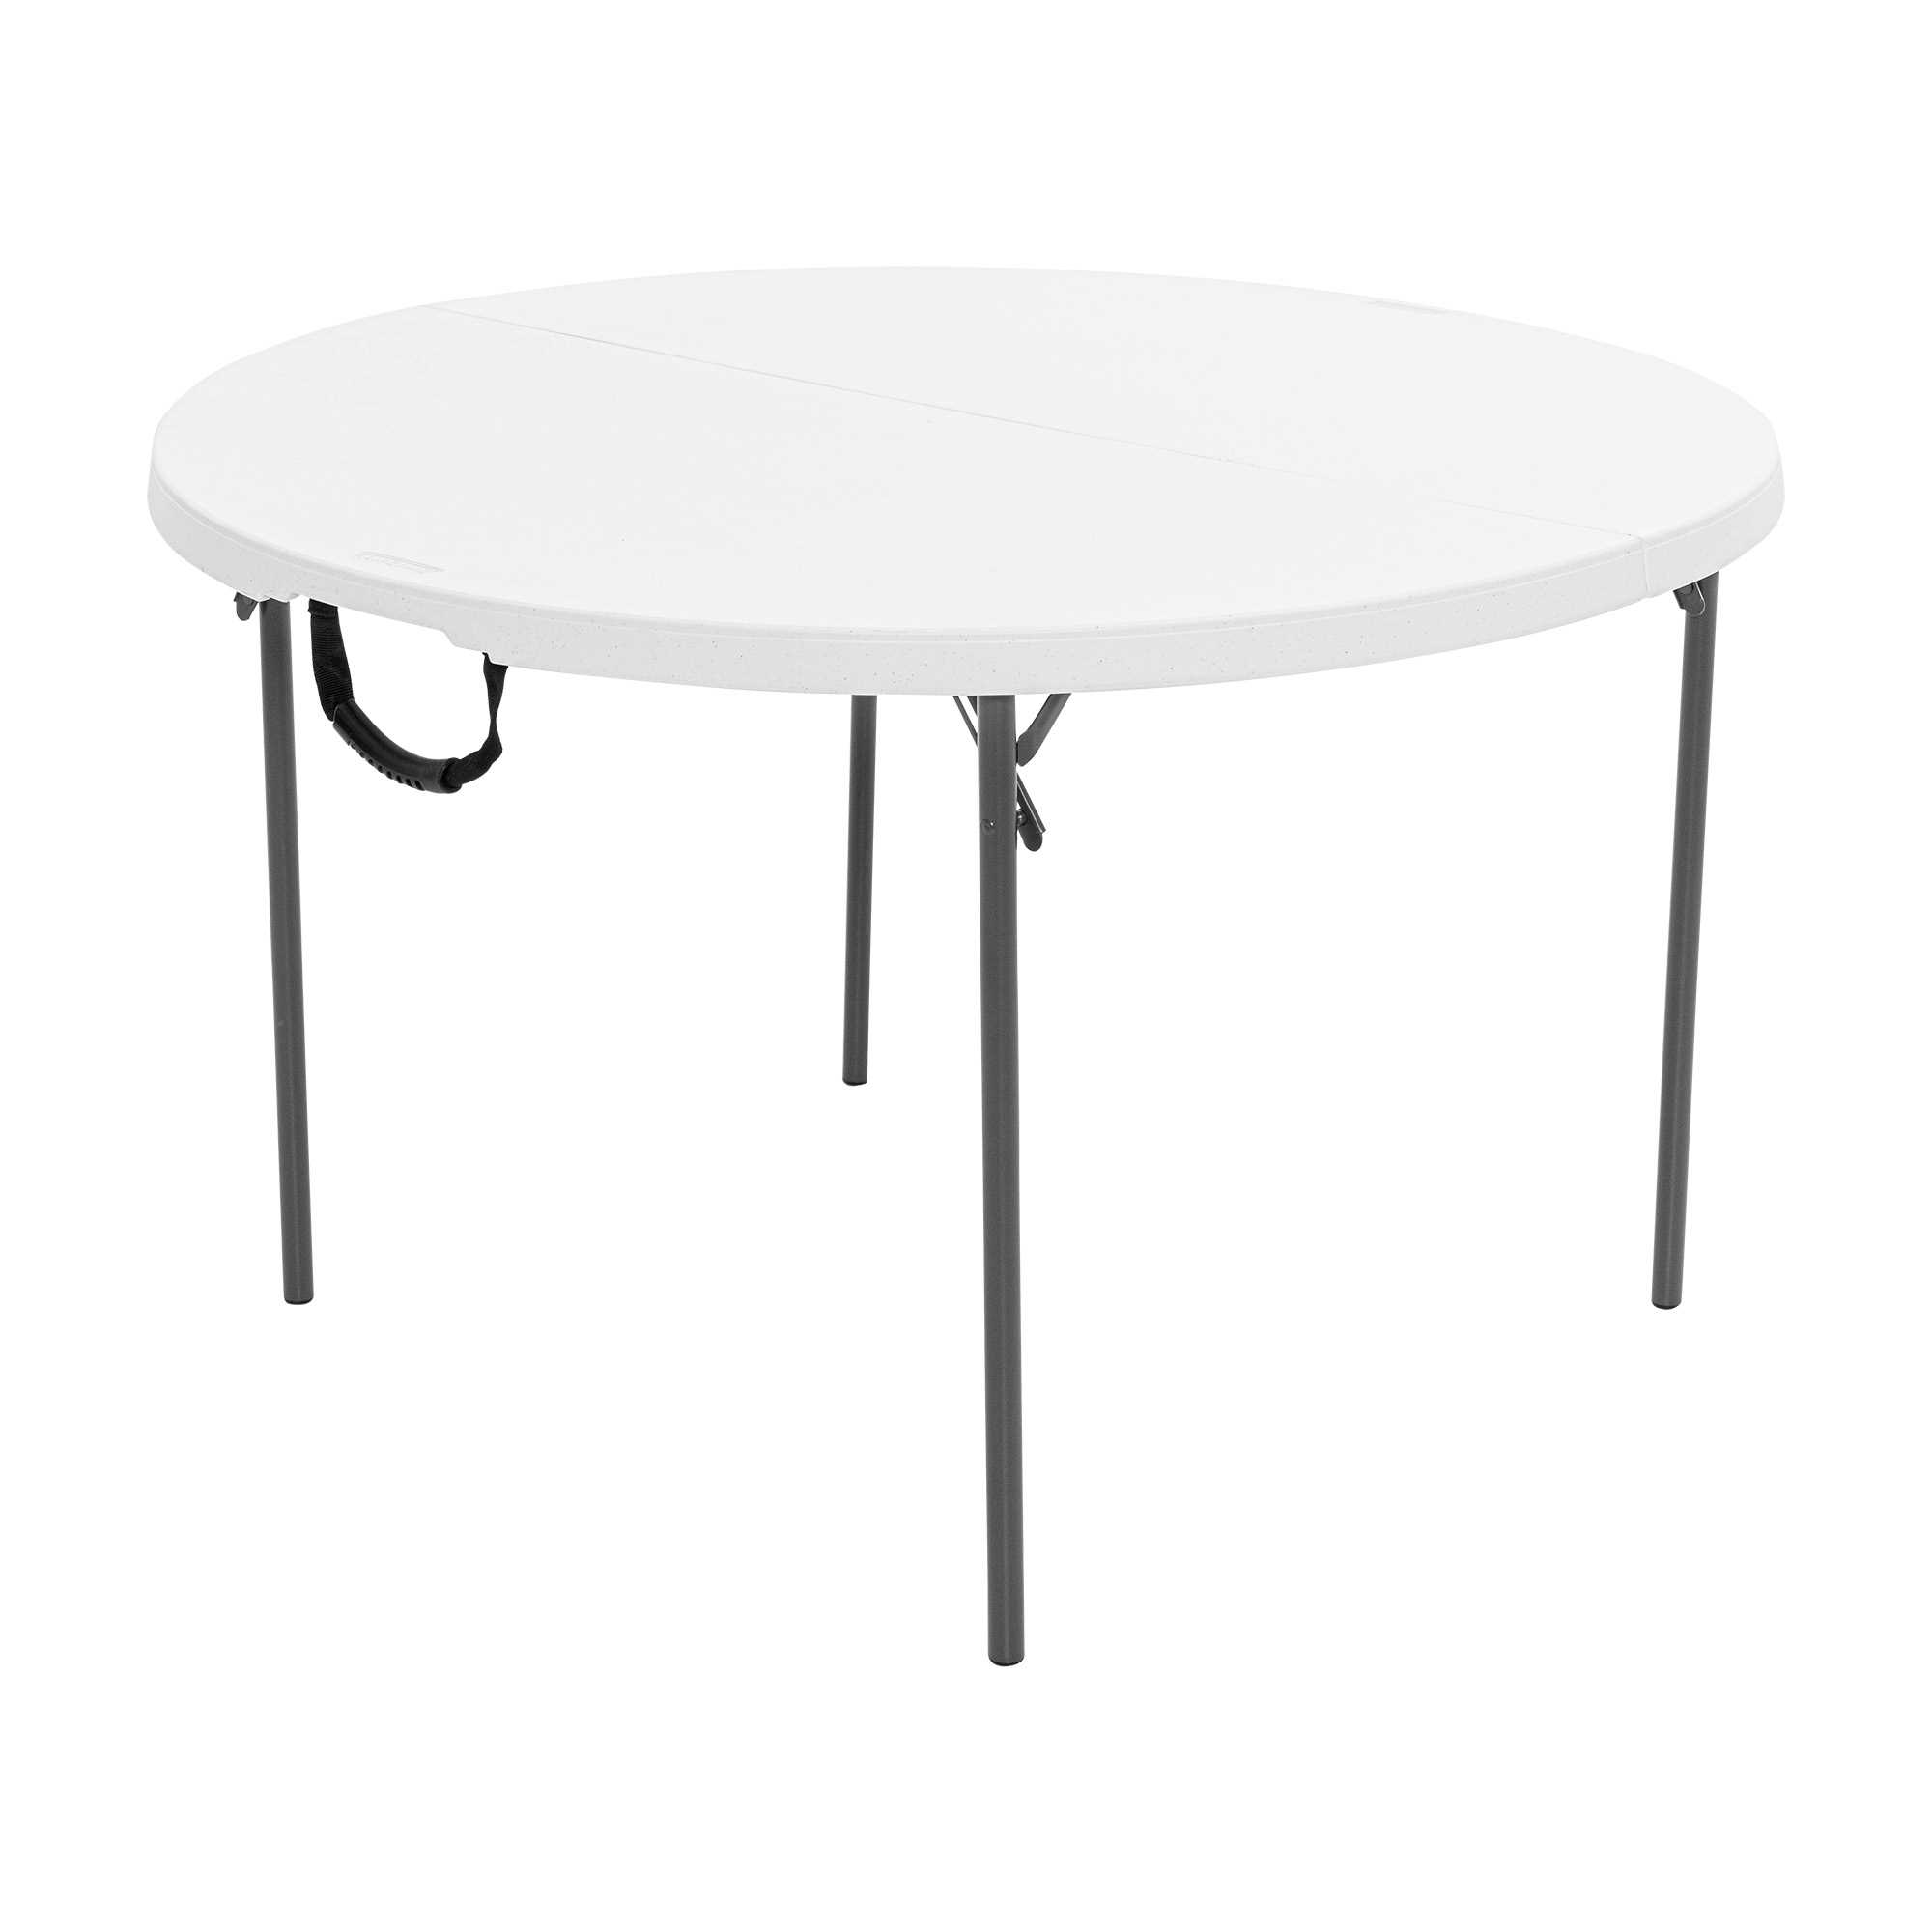 Table pliable en 2 ronde dia 122cm / 4 personnes